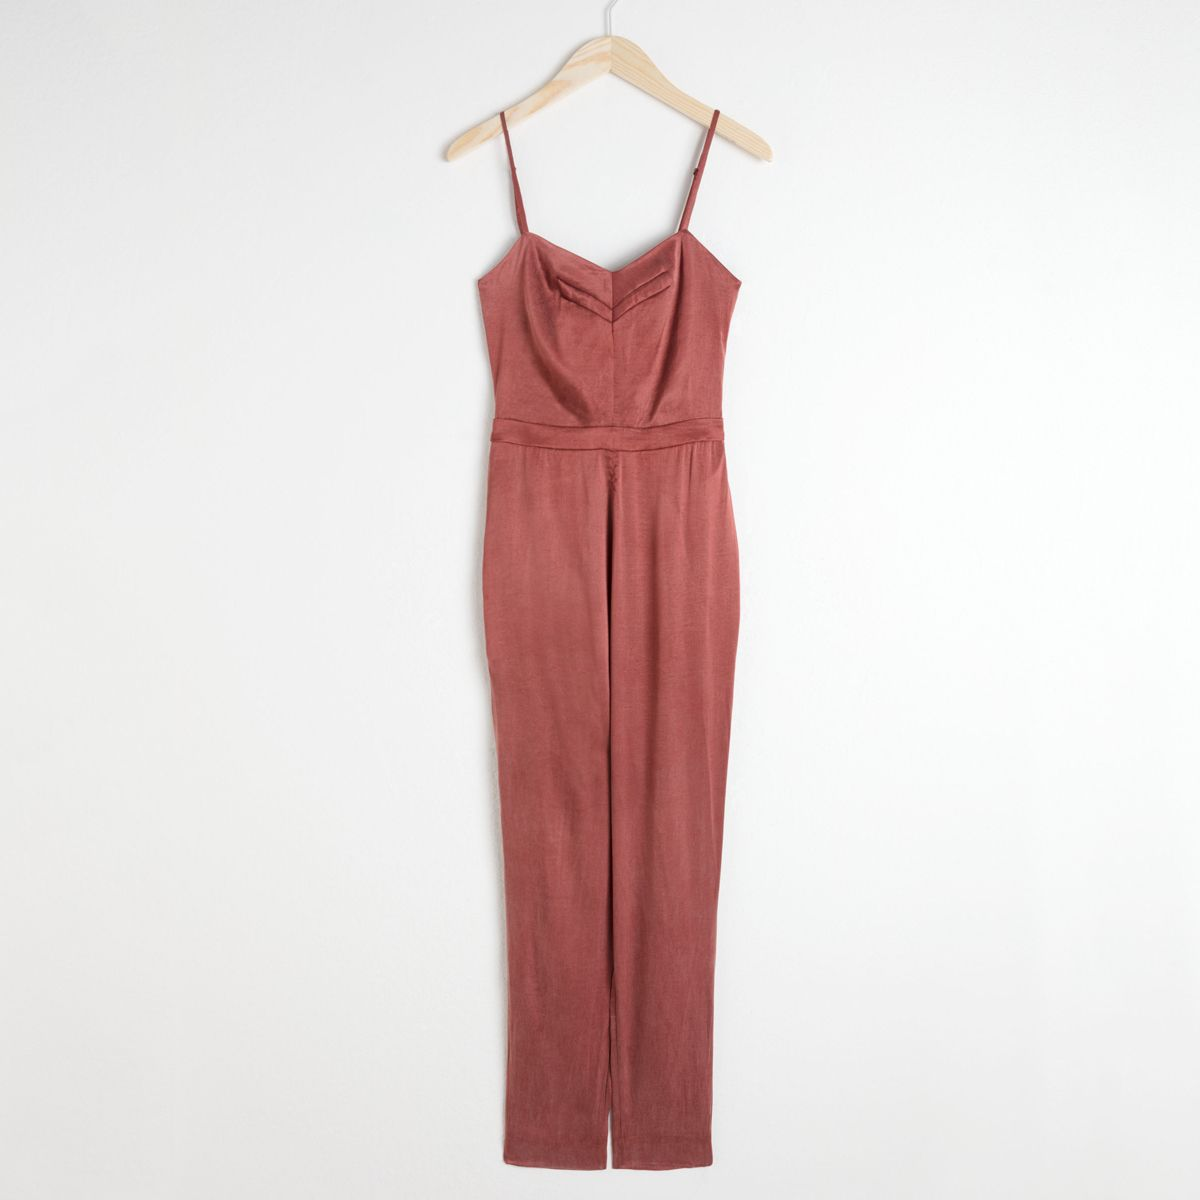 I Was a Diehard Dress Person Until I Saw These Party Jumpsuits